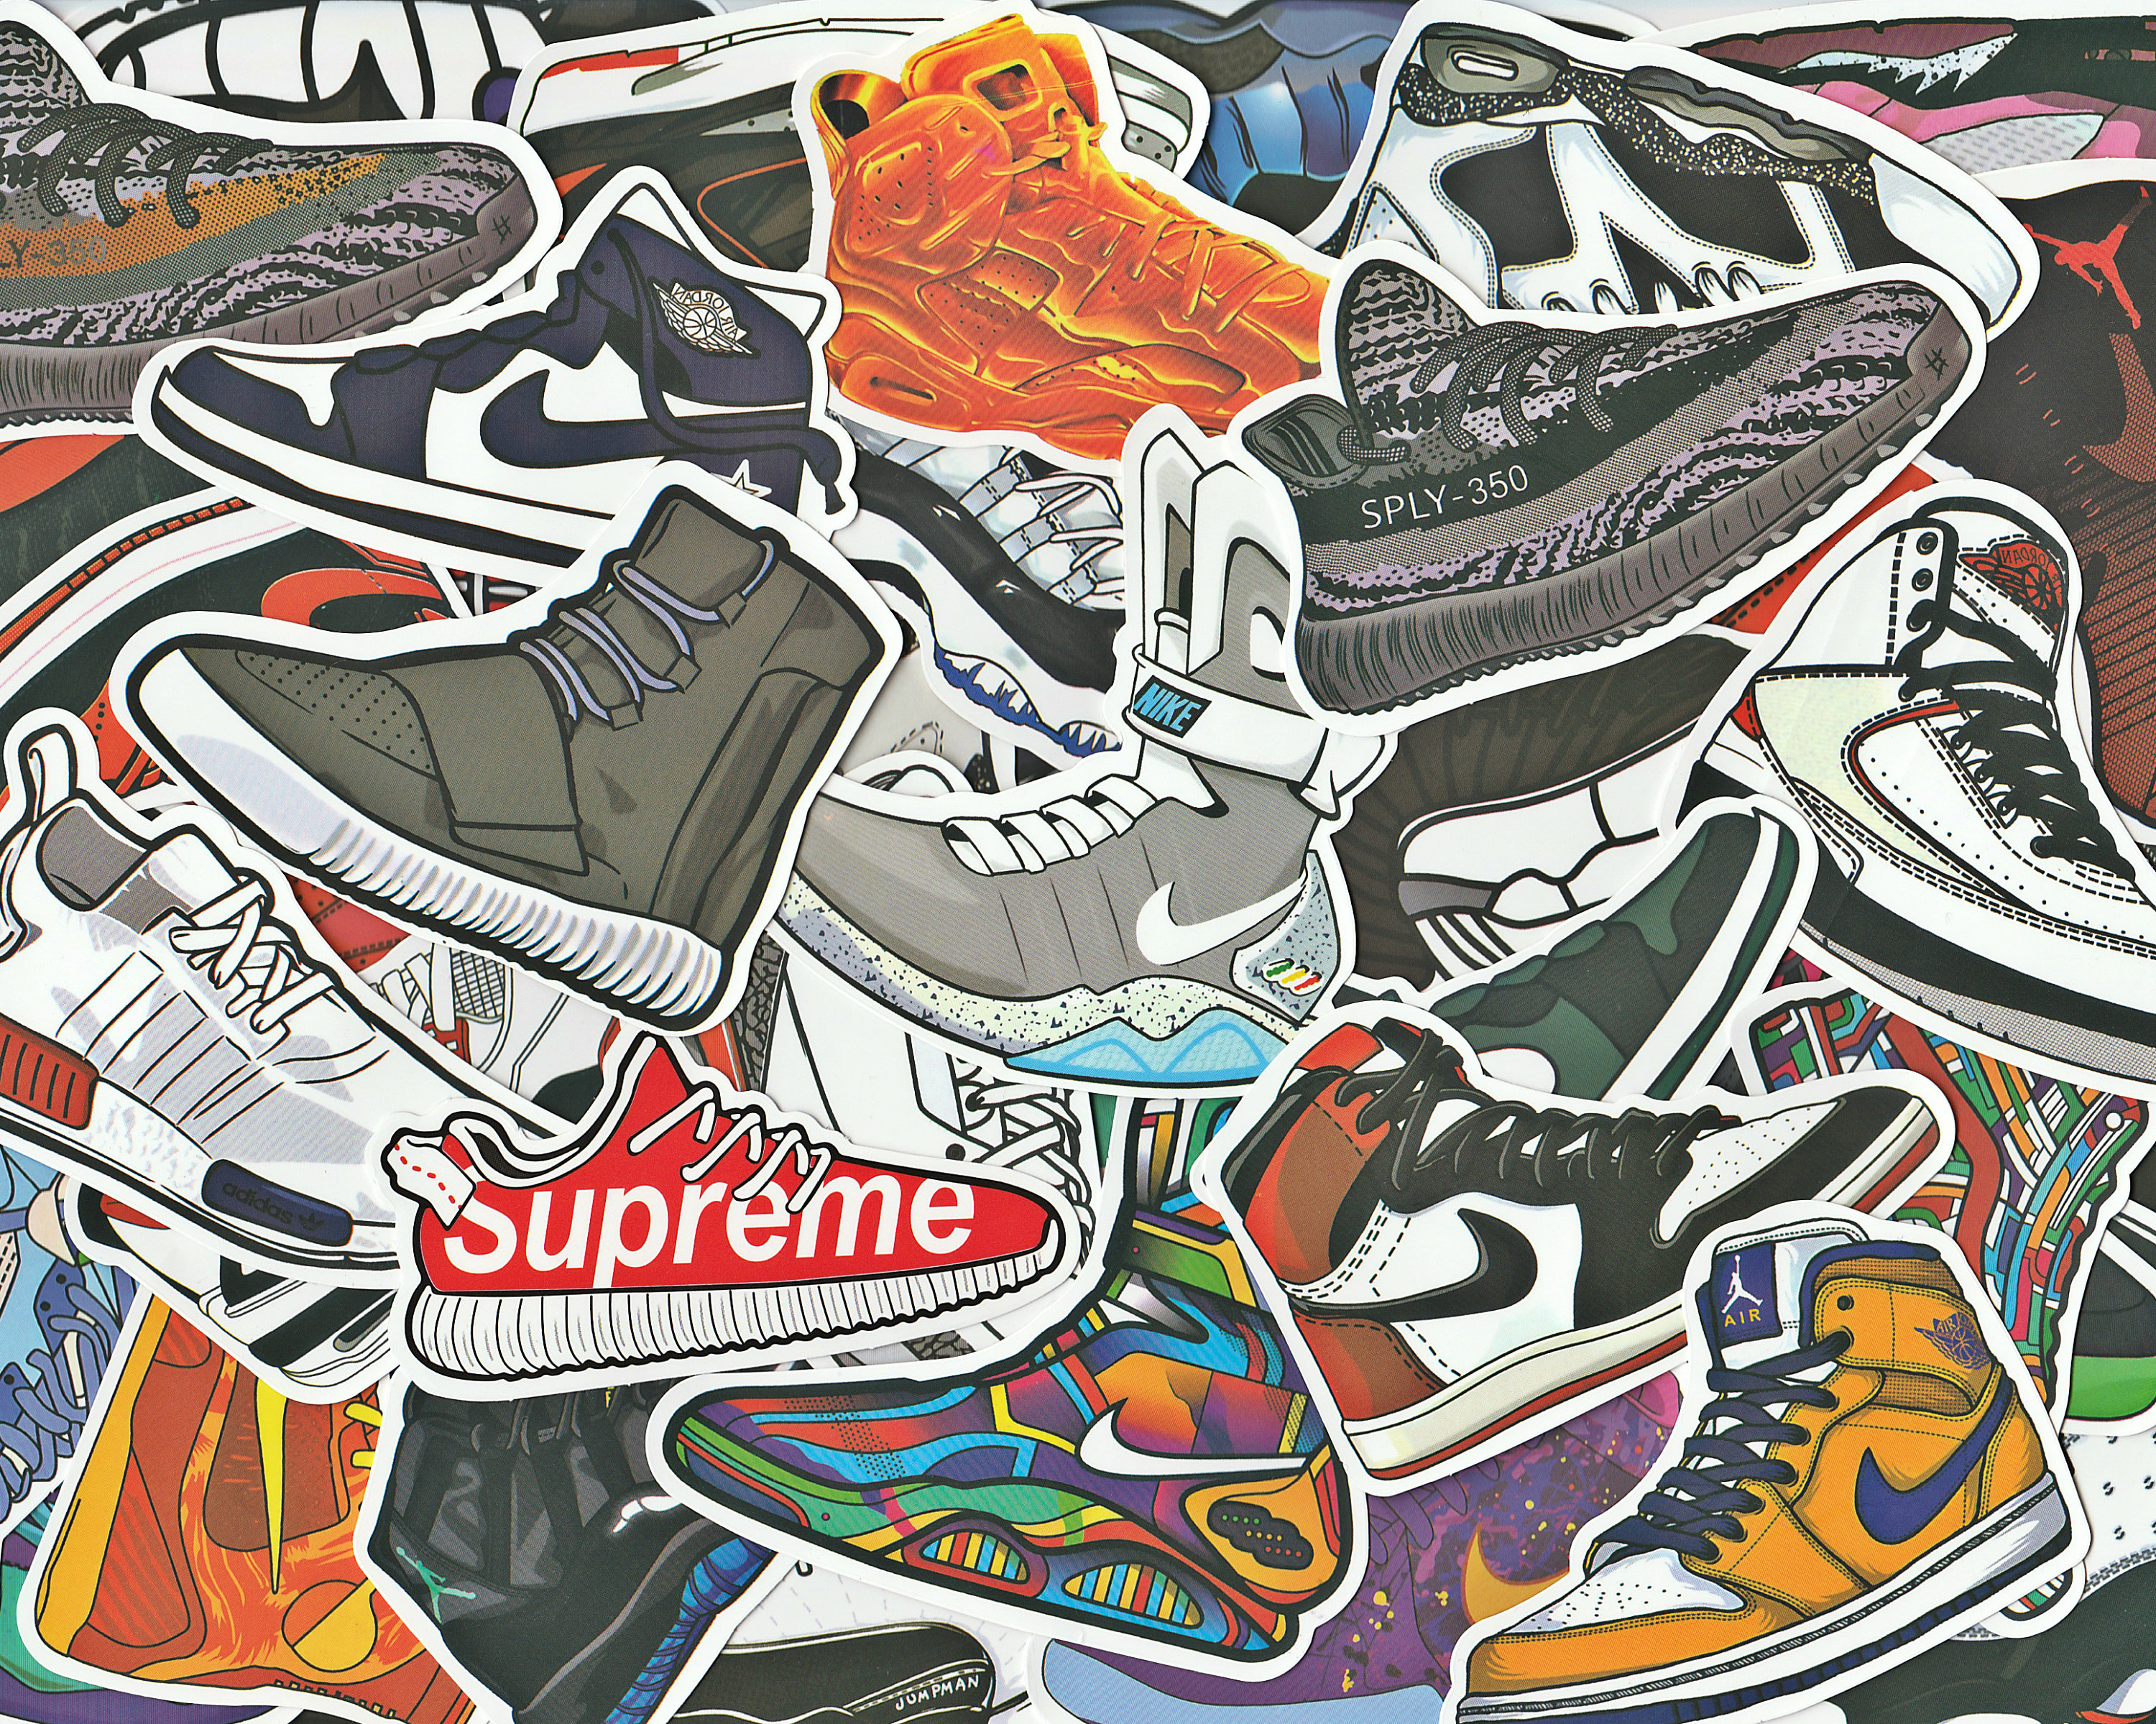 Sticker bombing sticker pack bright hypebeast stickers from